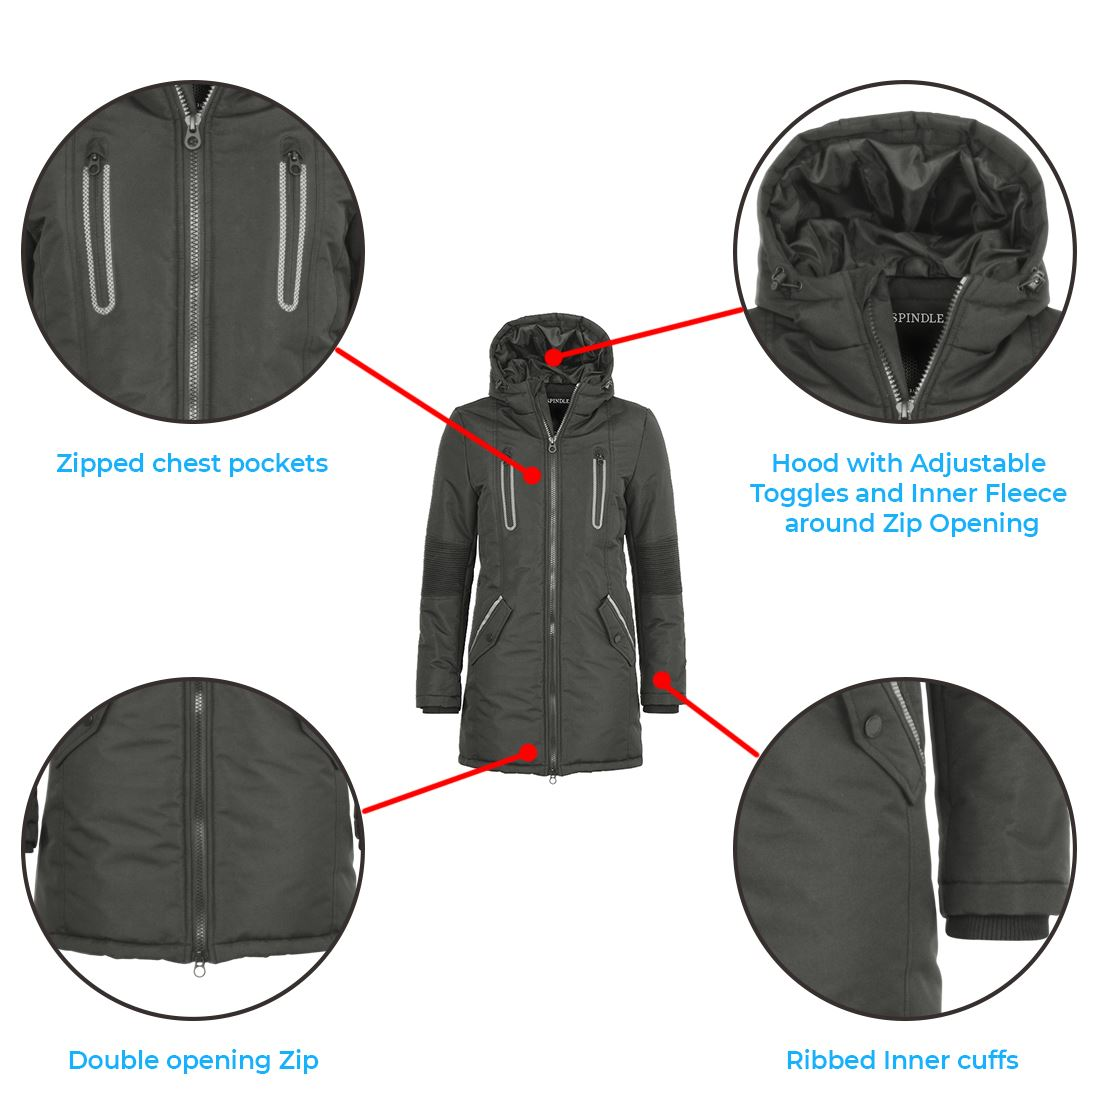 Boys Childrens Spindle Padded Winter Long Coat Jacket Youths School Zip Pockets